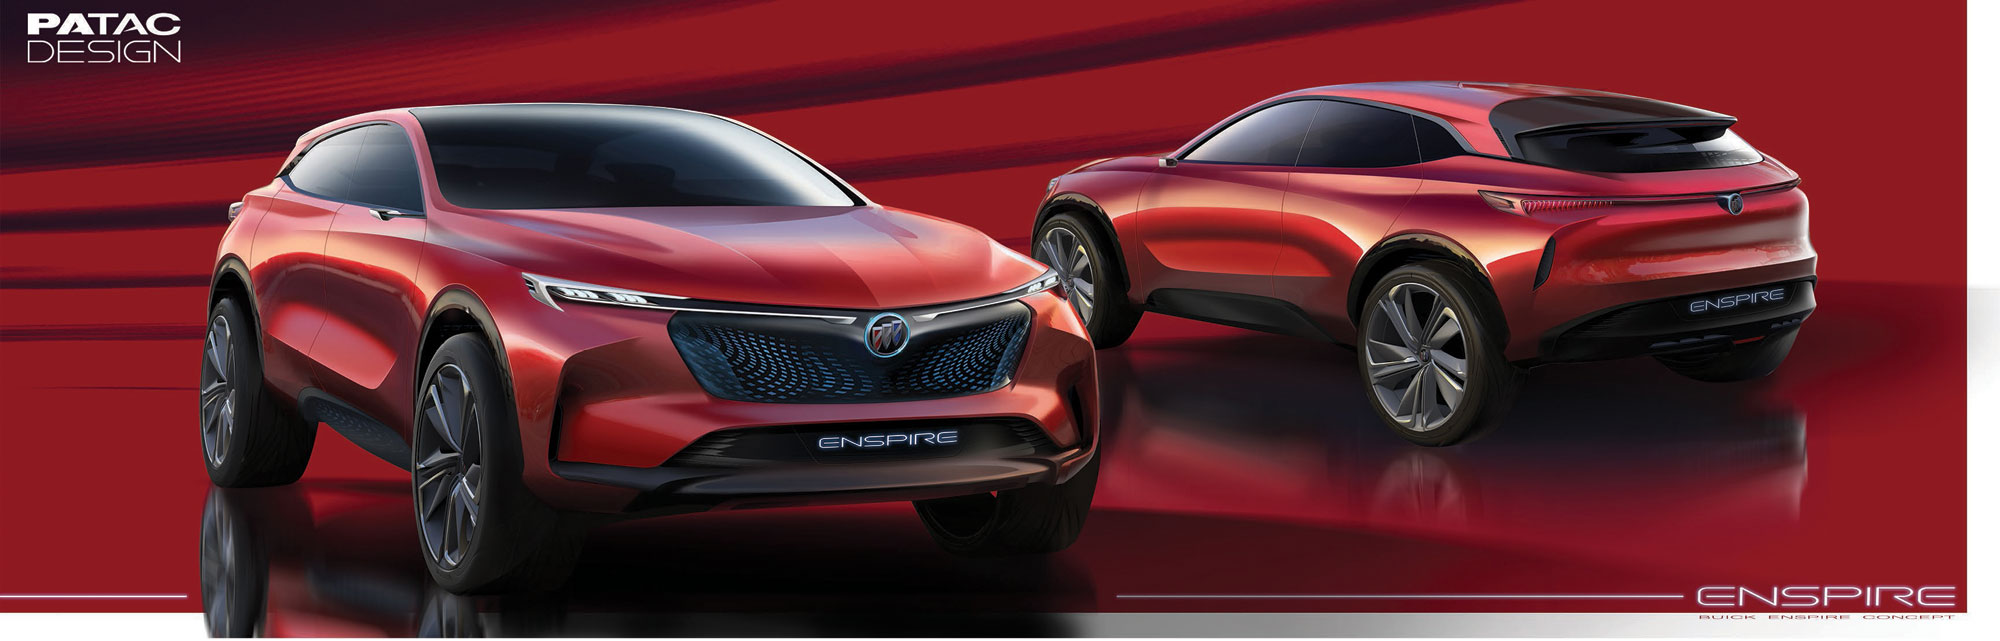 buick-enspire-concept-sketches-front-rear